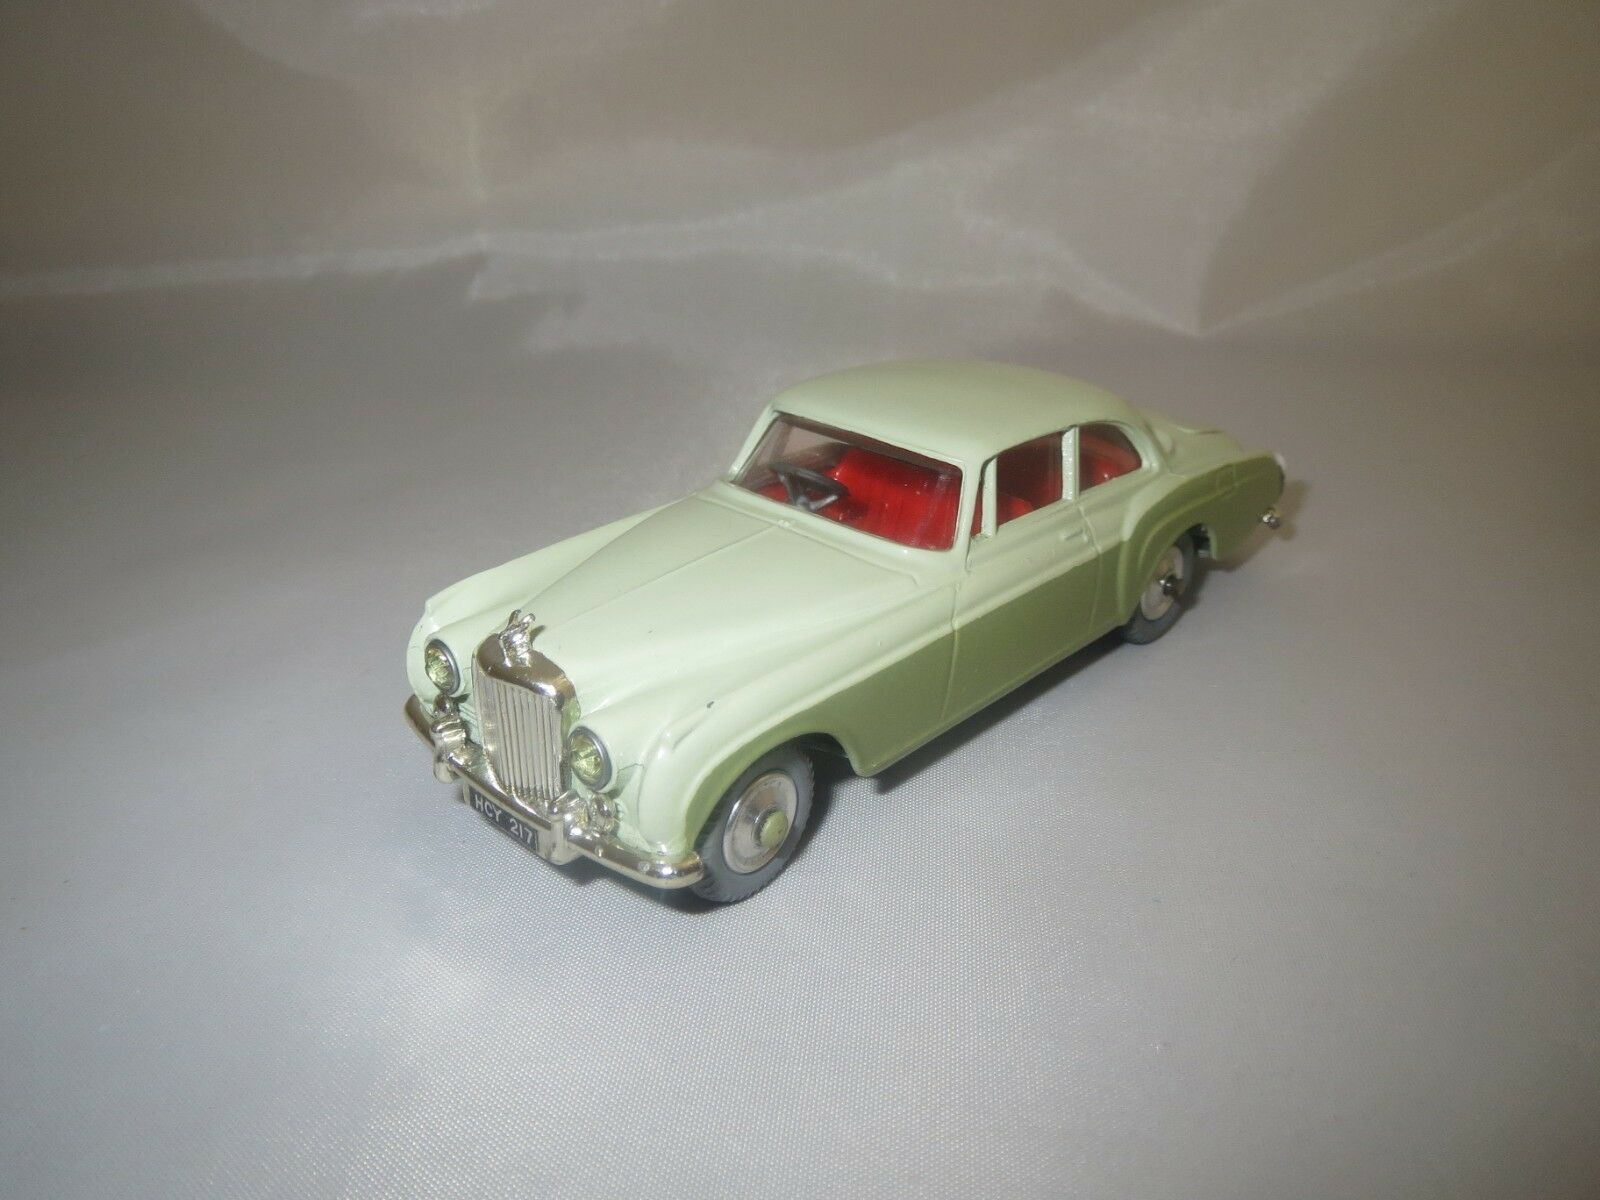 CORGI TOYS 224 BENTLEY CONTINENTAL SPORTS SALOON (hell-vert foncé) sans VP.